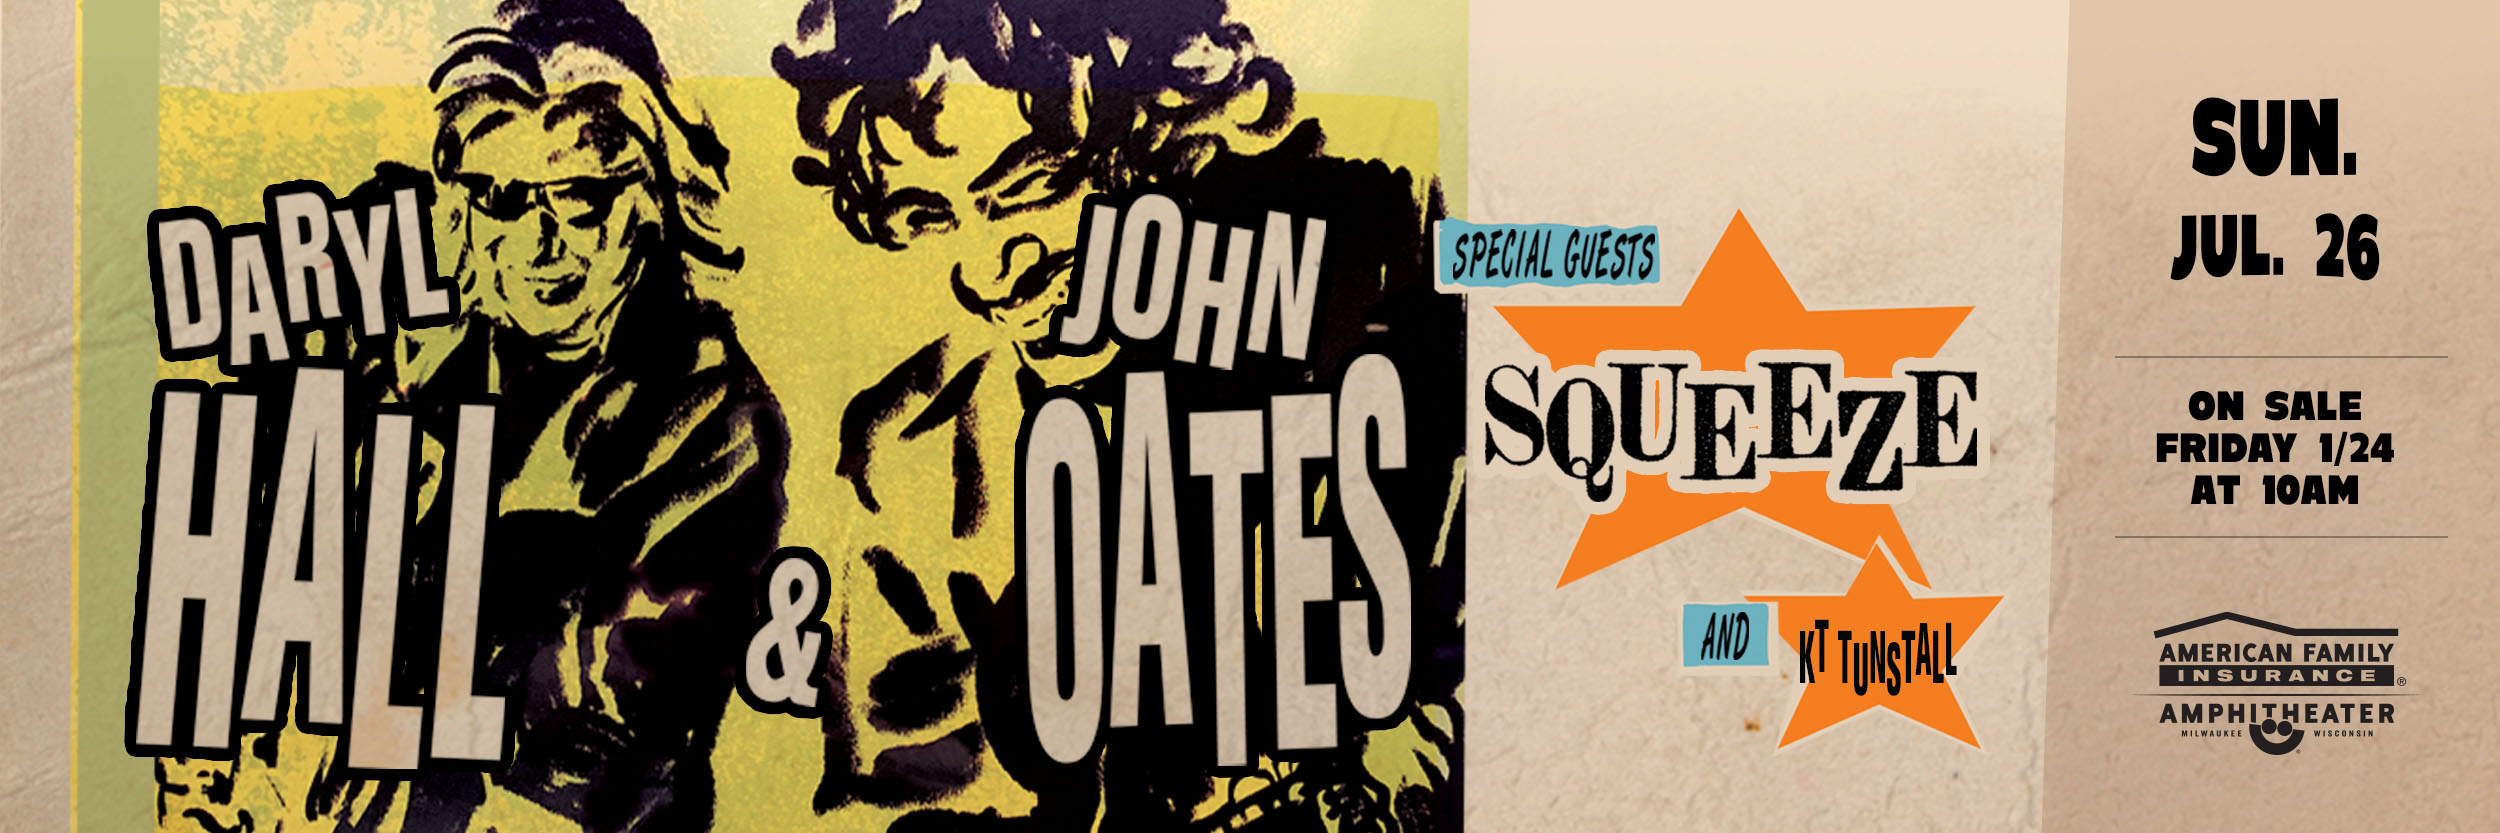 DARYL HALL & JOHN OATES WITH SPECIAL GUESTS SQUEEZE AND KT TUNSTALL